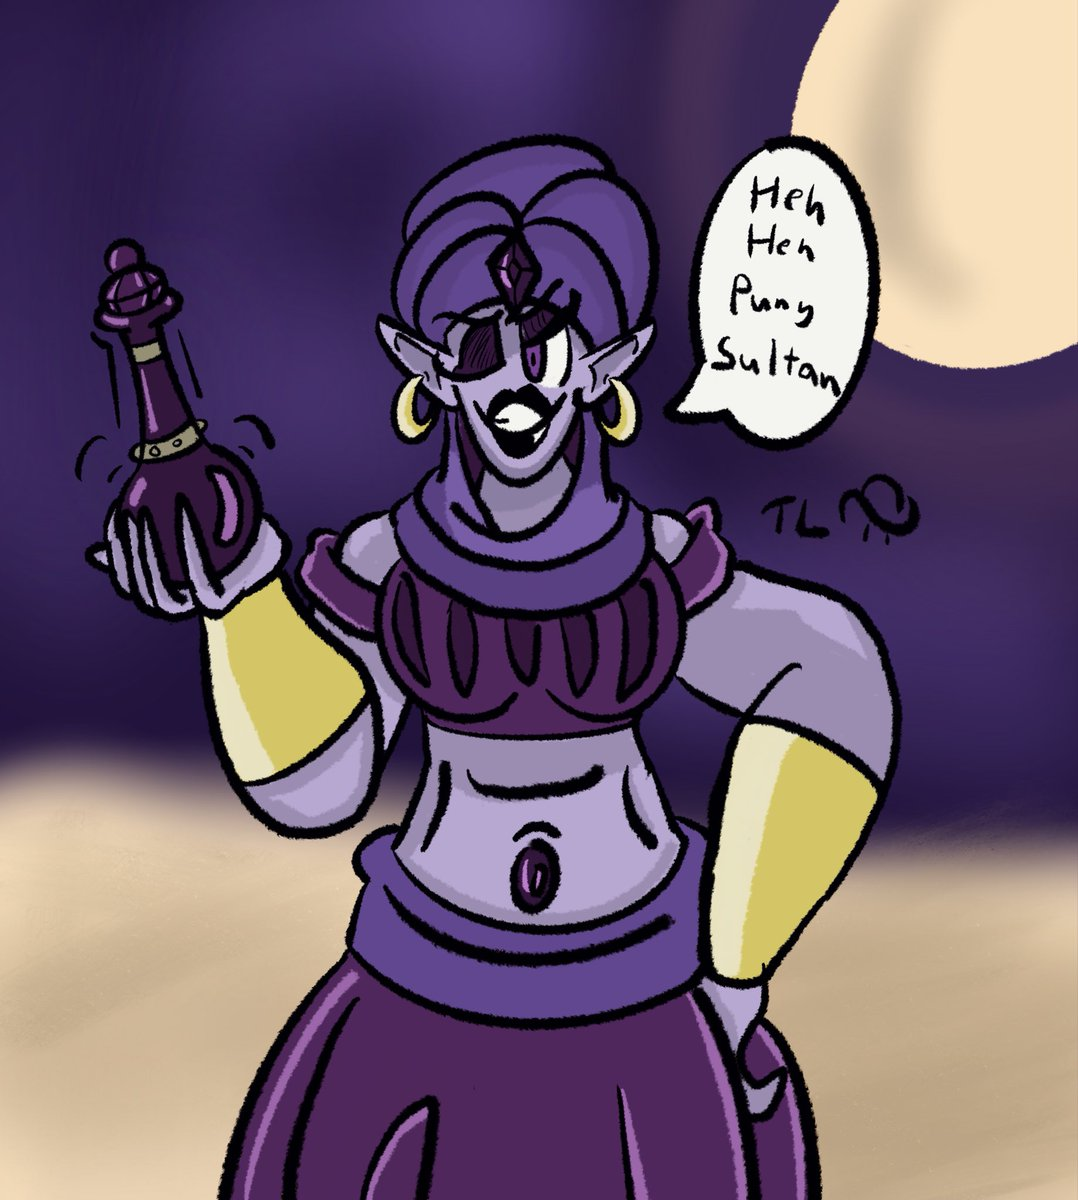 Colored the pic and added some details. I also realized I really like the color purple. #digitalart #digitalpainting #digitaldrawing #genie #ArabianNights #genieinabottle #djinn #artistsontwitterpic.twitter.com/A4EneftMPV